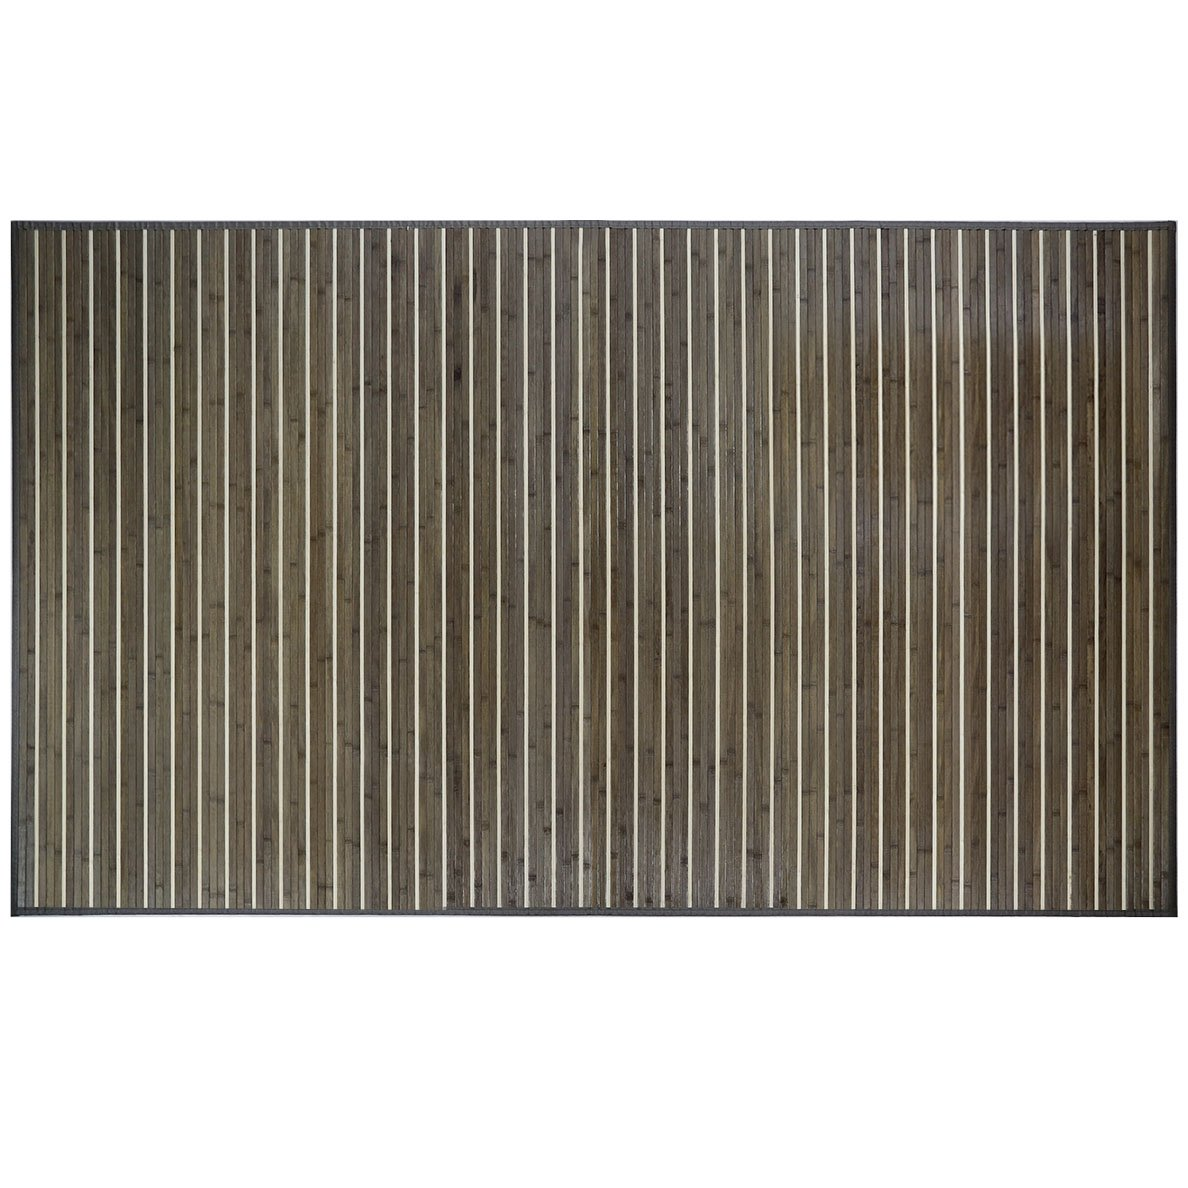 "Venice Natural Bamboo 5 X 8 (60""x96"") Floor Mat, Bamboo Area Rug Indoor Carpet, Rustic Grey Color Finish, Non Skid Backing, Floor Runner Mat Living room, Hallway, Kitchen, Office"